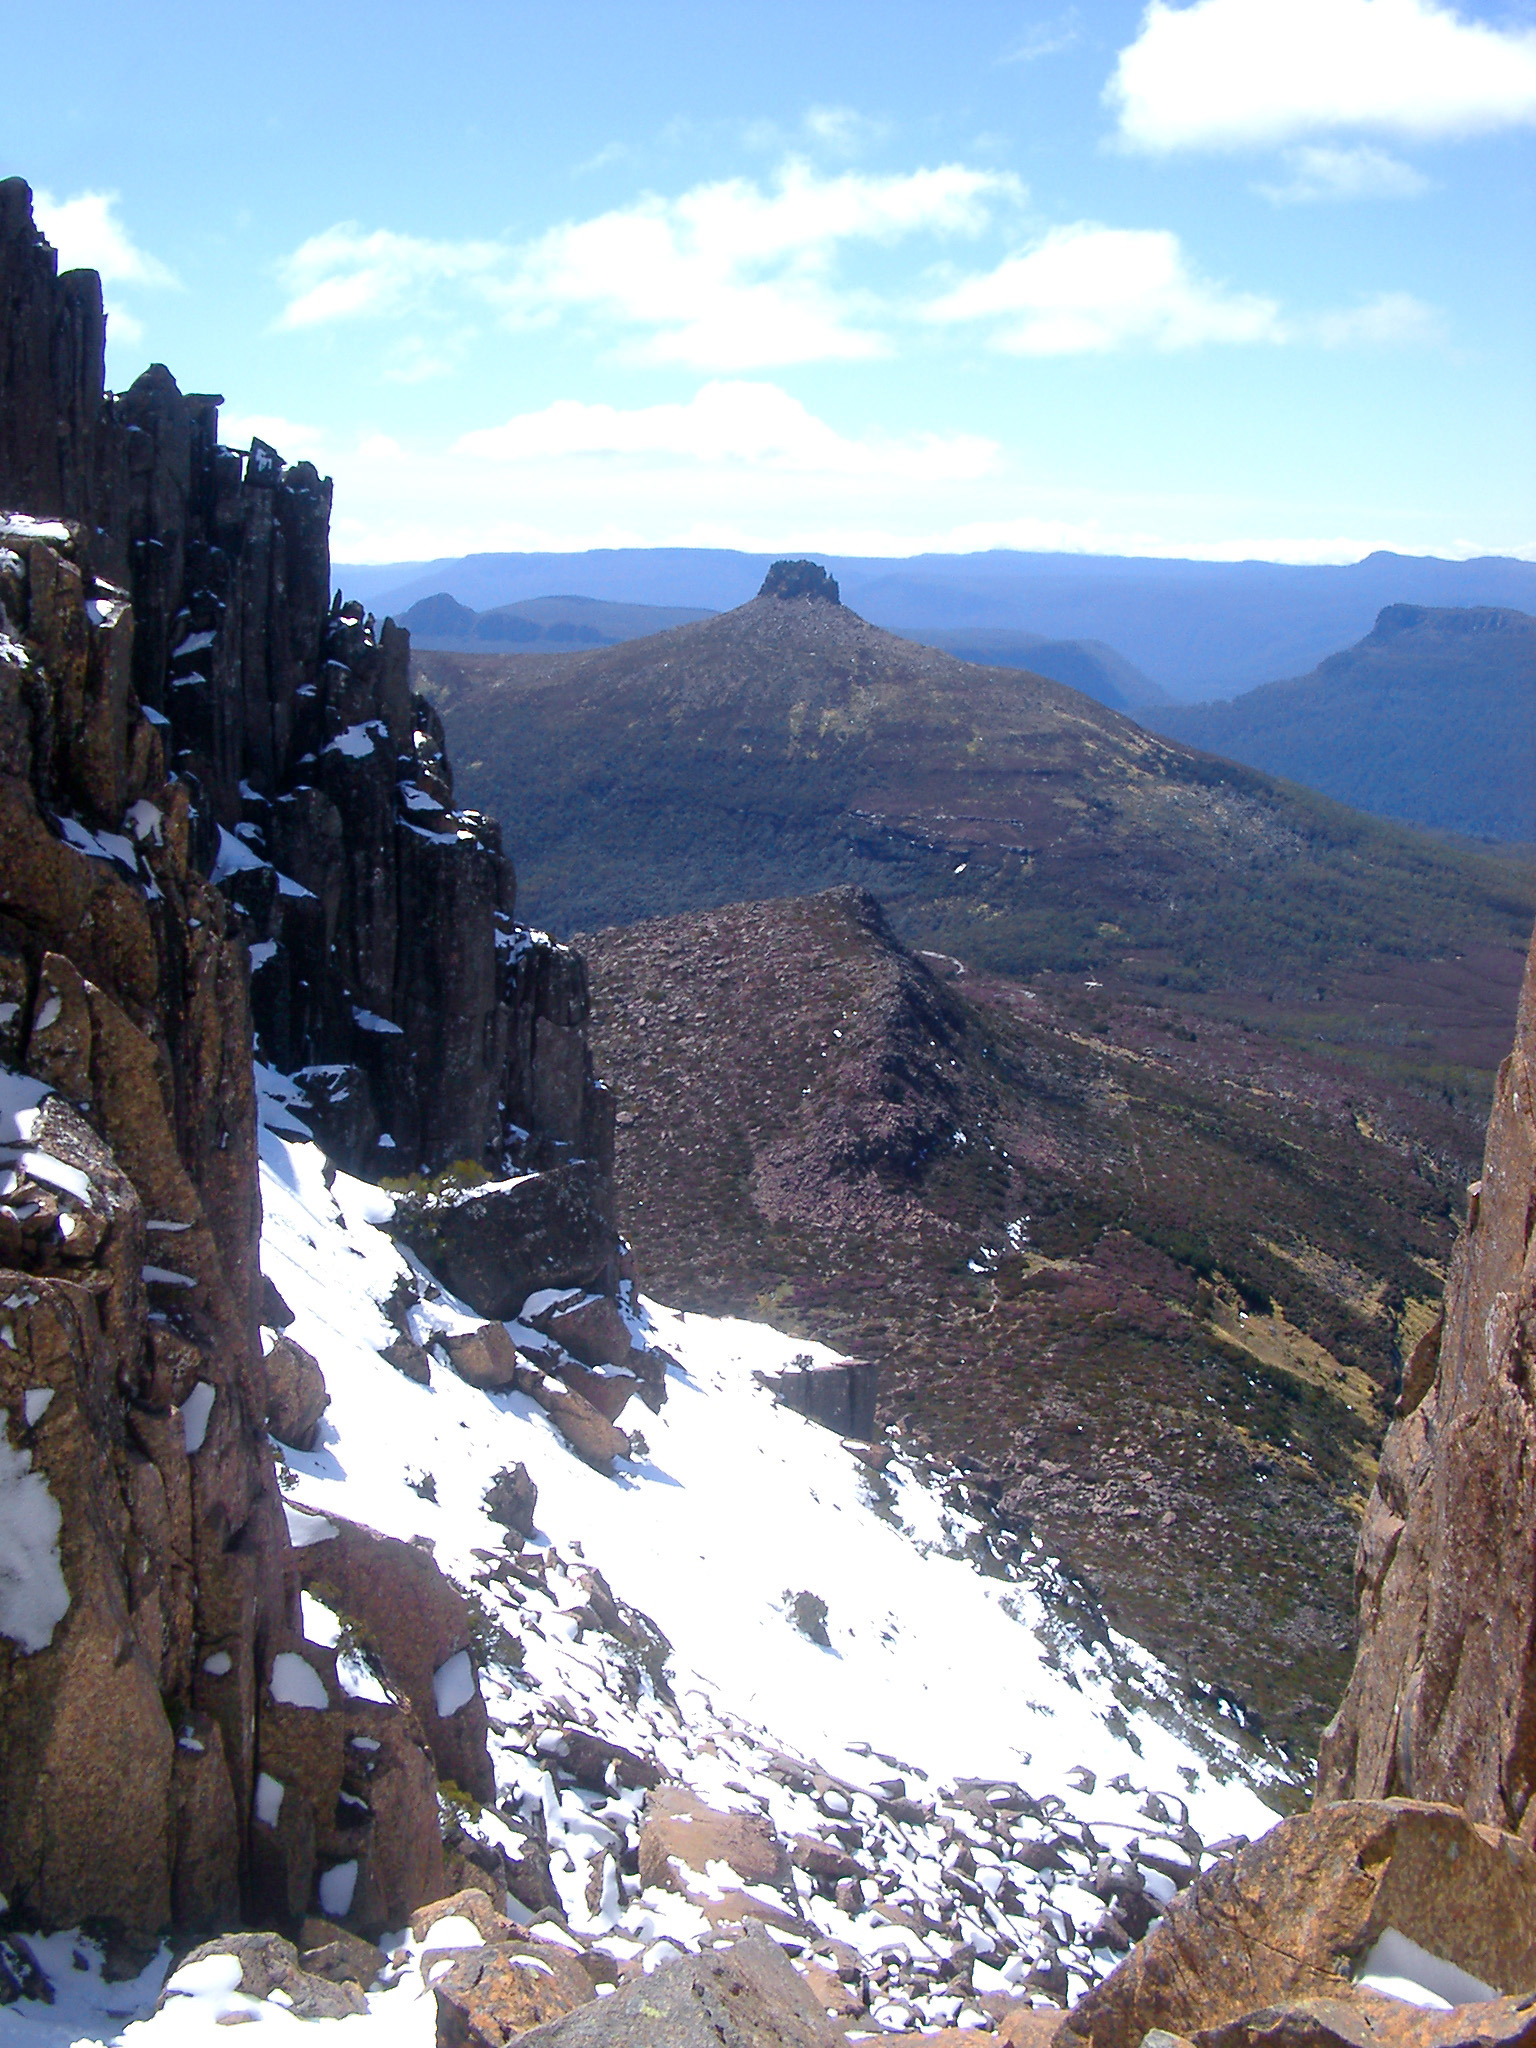 View from the highest mountain in Tasmania, Mount Ossa of the overland track crossing the mountains dusted with light snow